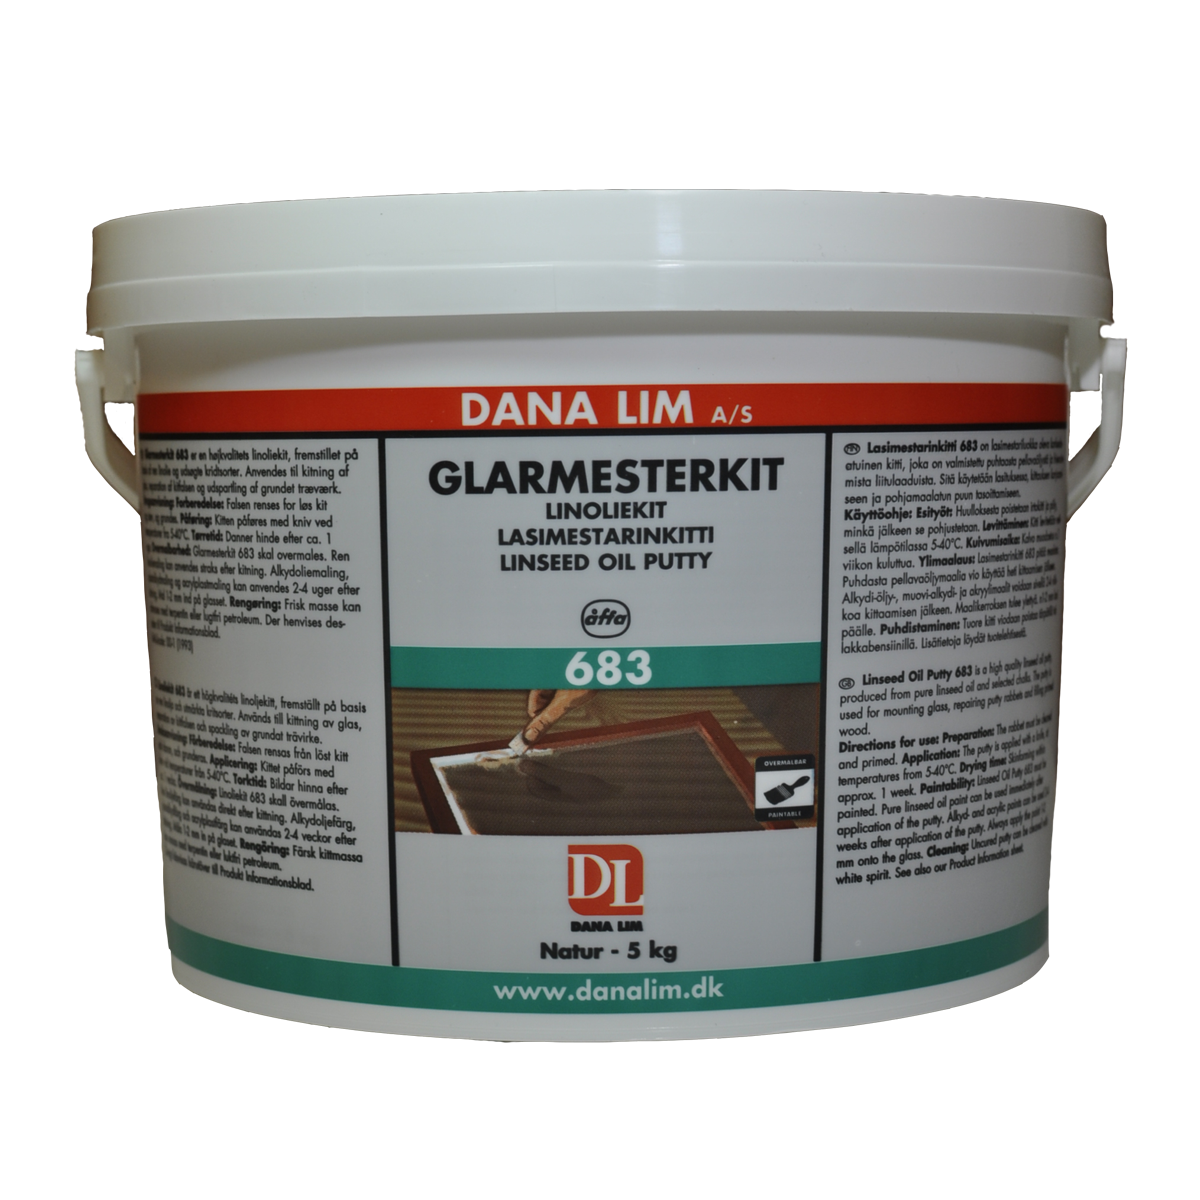 Linseed oil kg uula. Putty transparent picture black and white stock